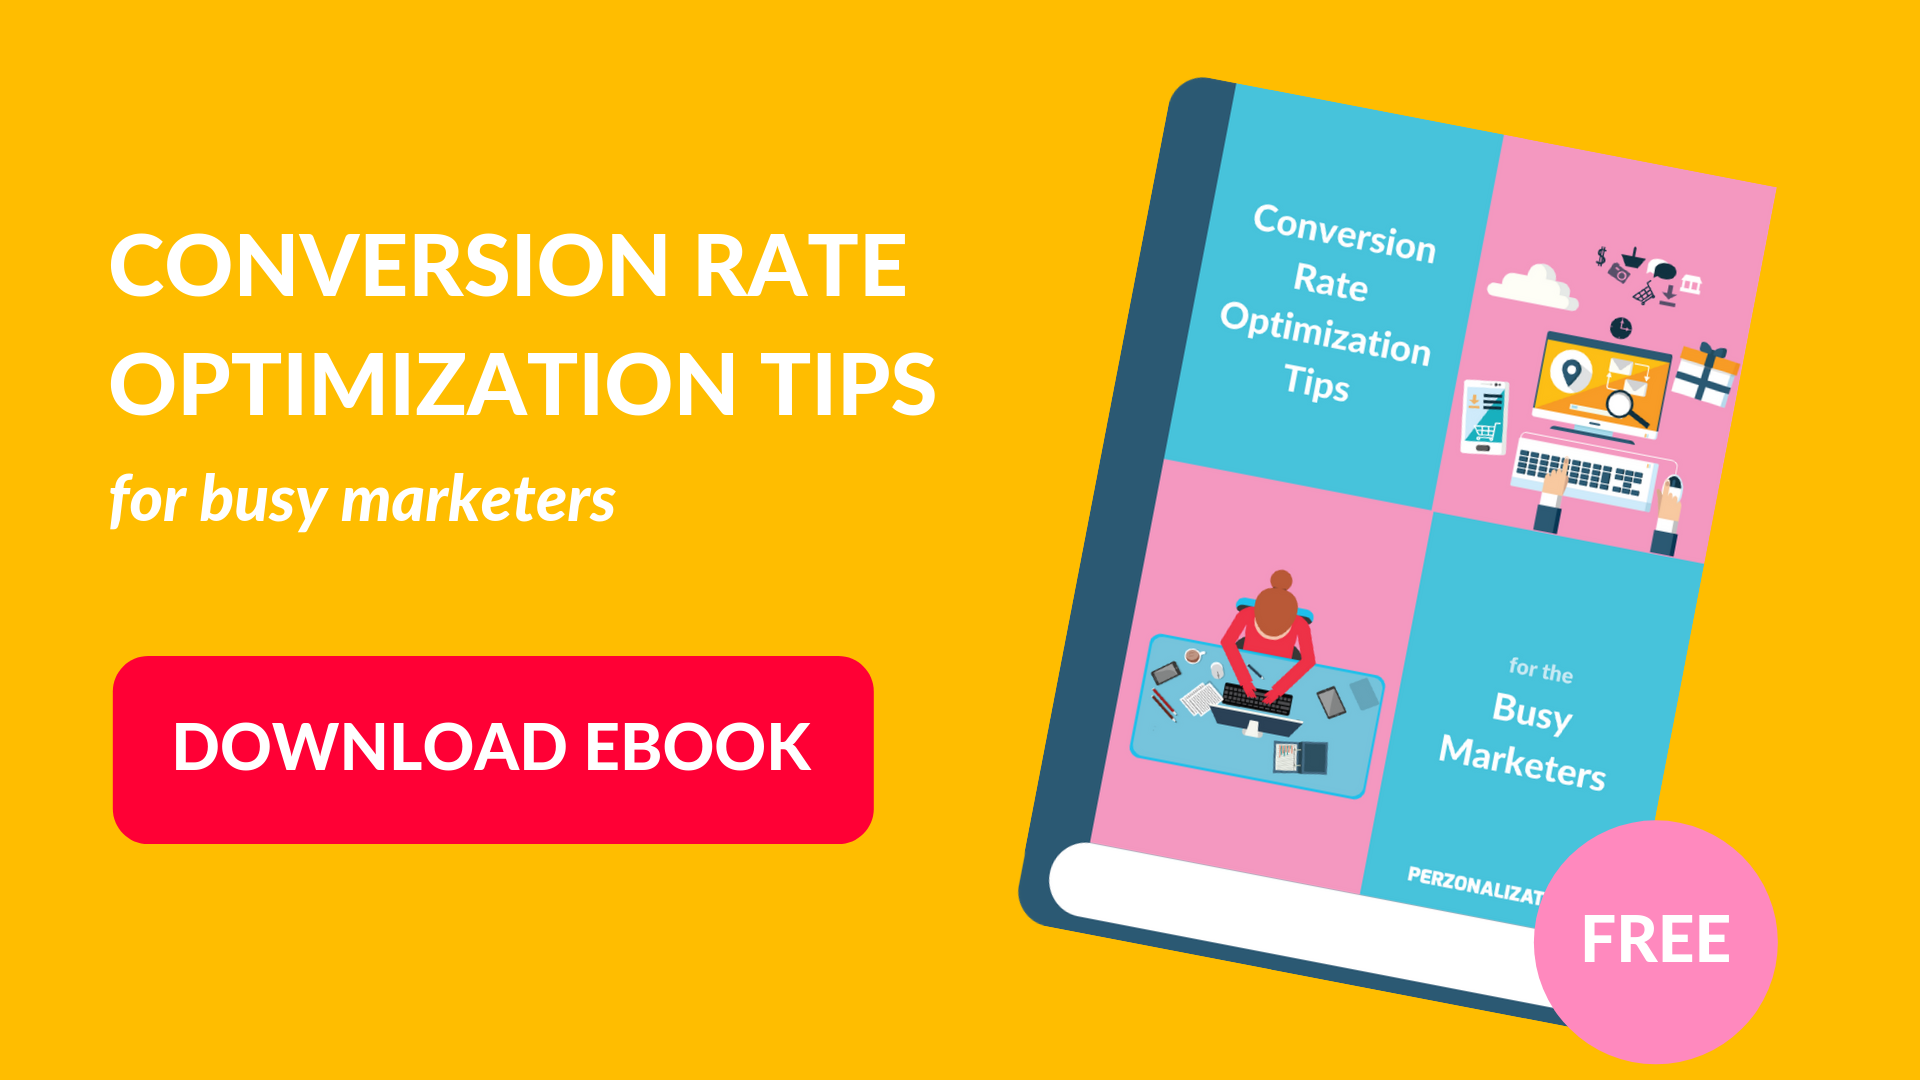 Download free eBook: Conversion rate optimization tips